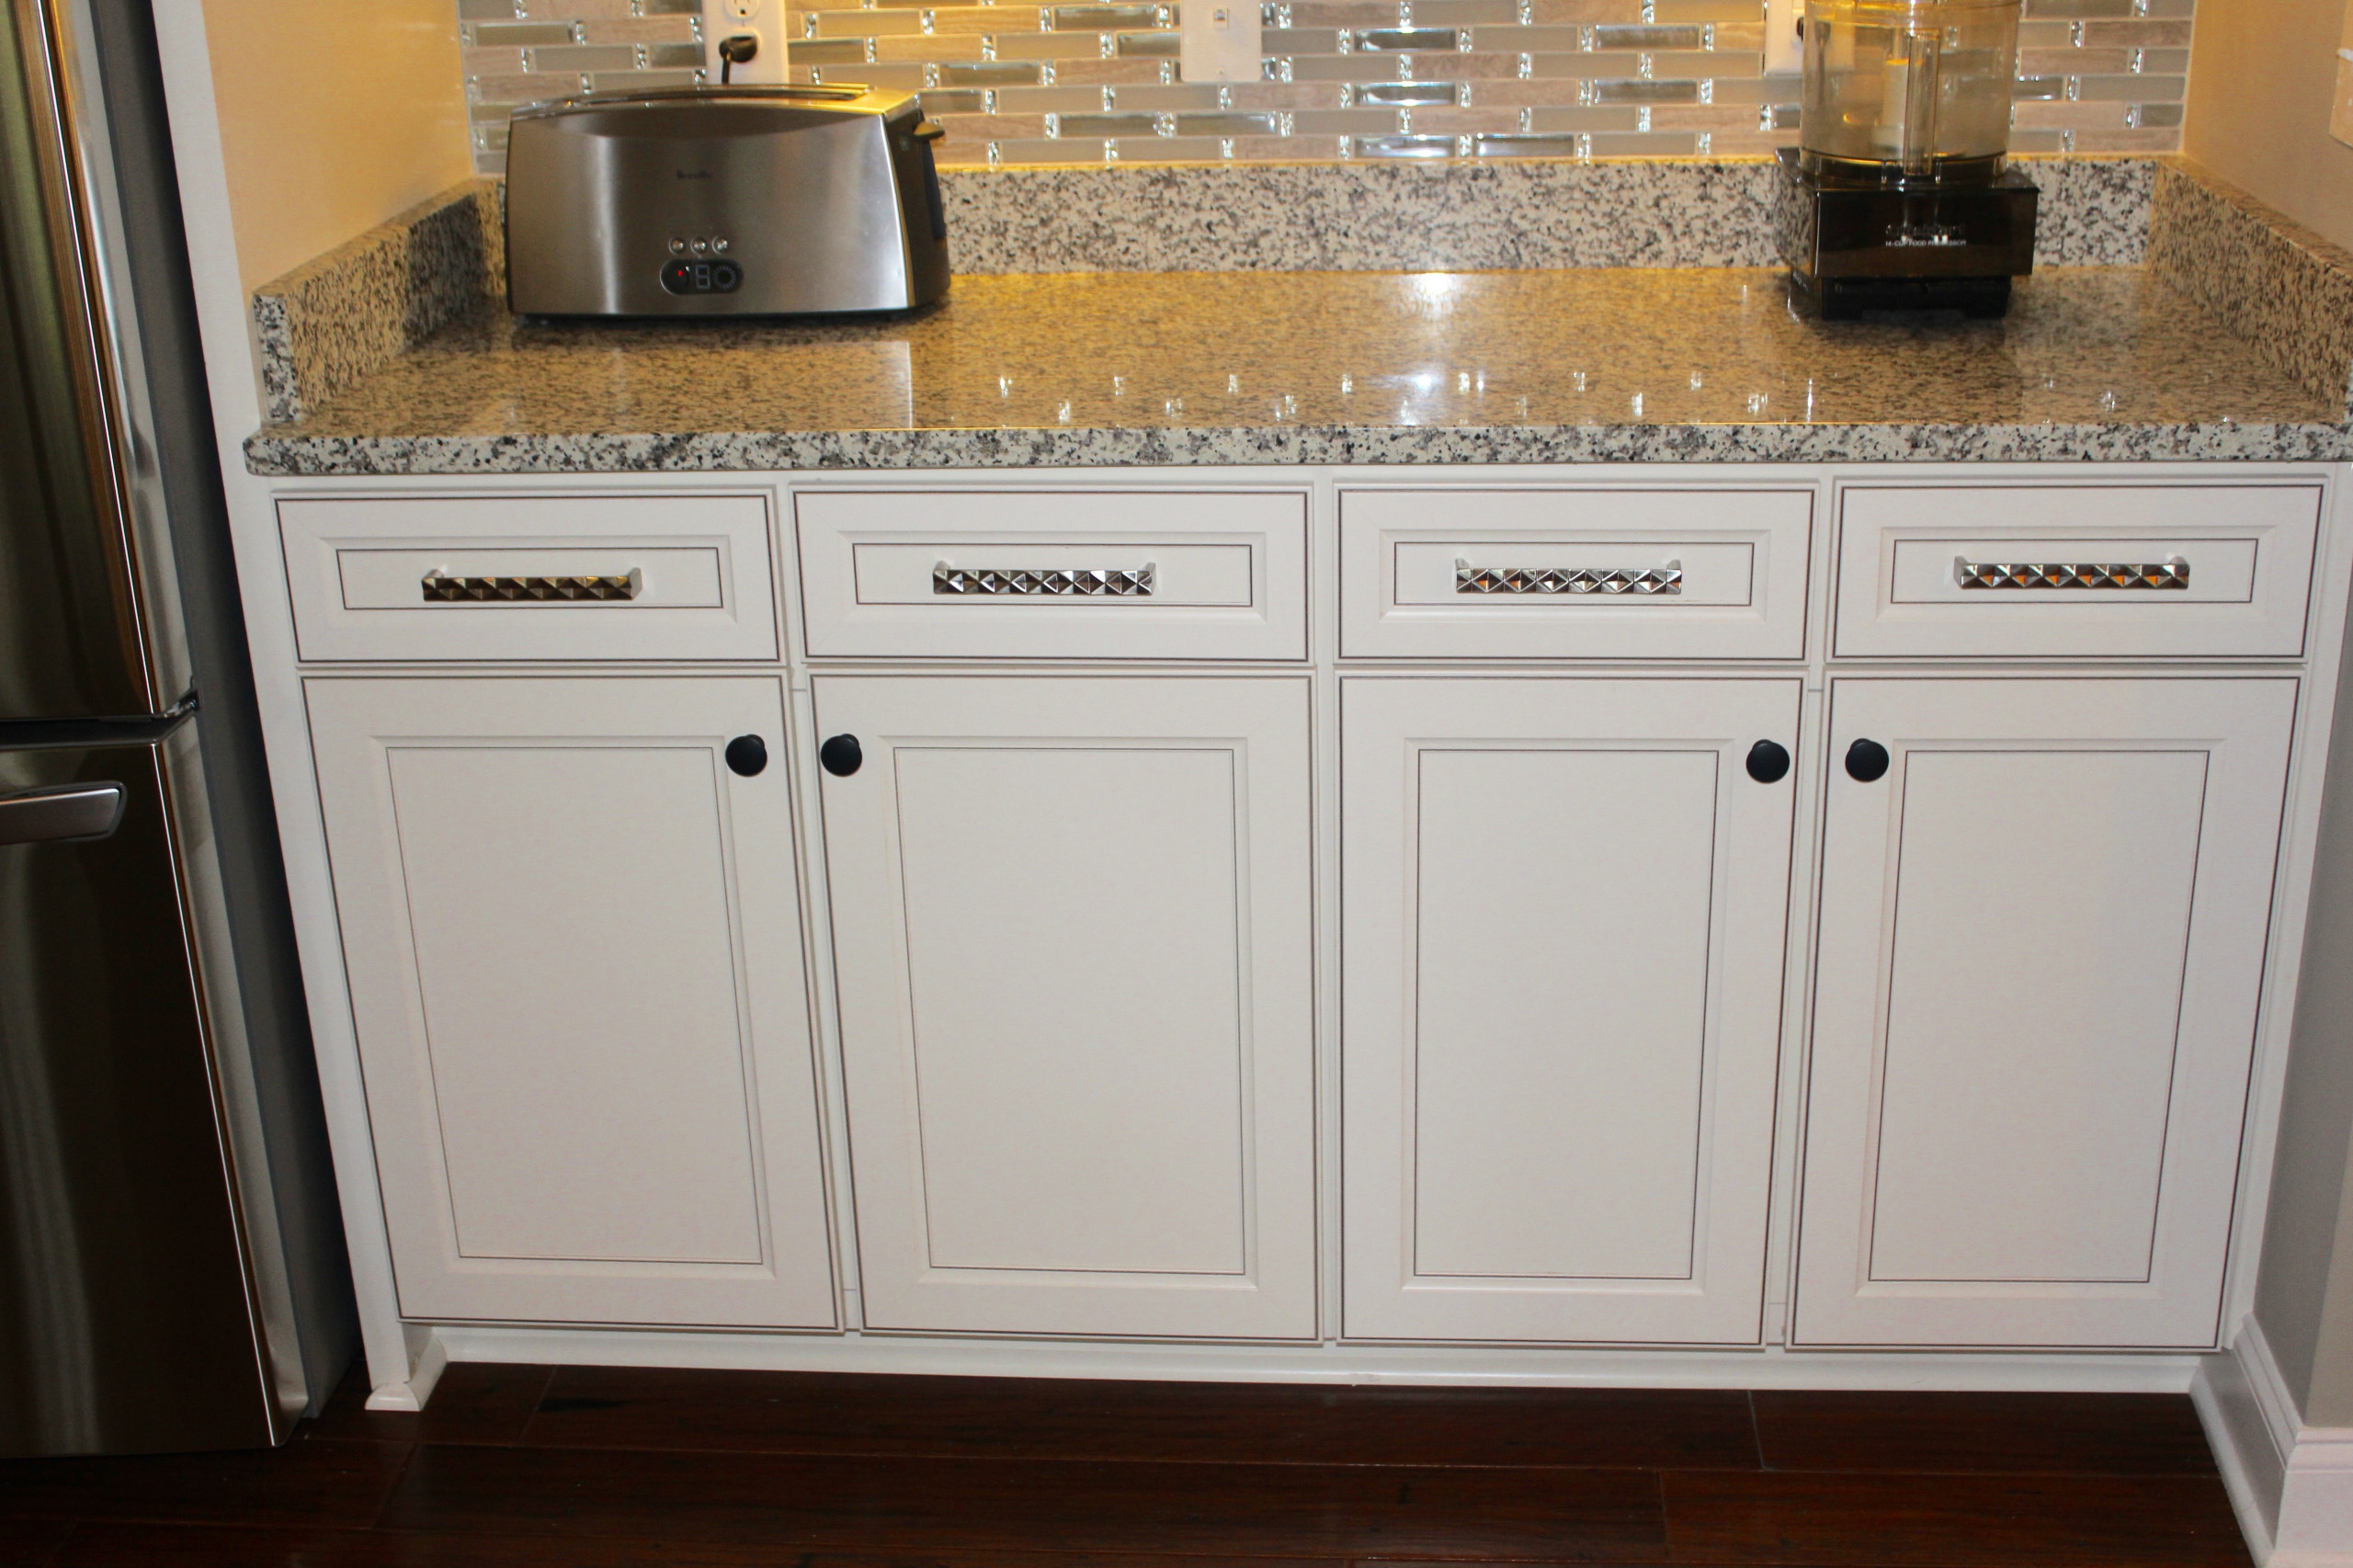 Oversized brushed nickel pulls are combined with black knobs